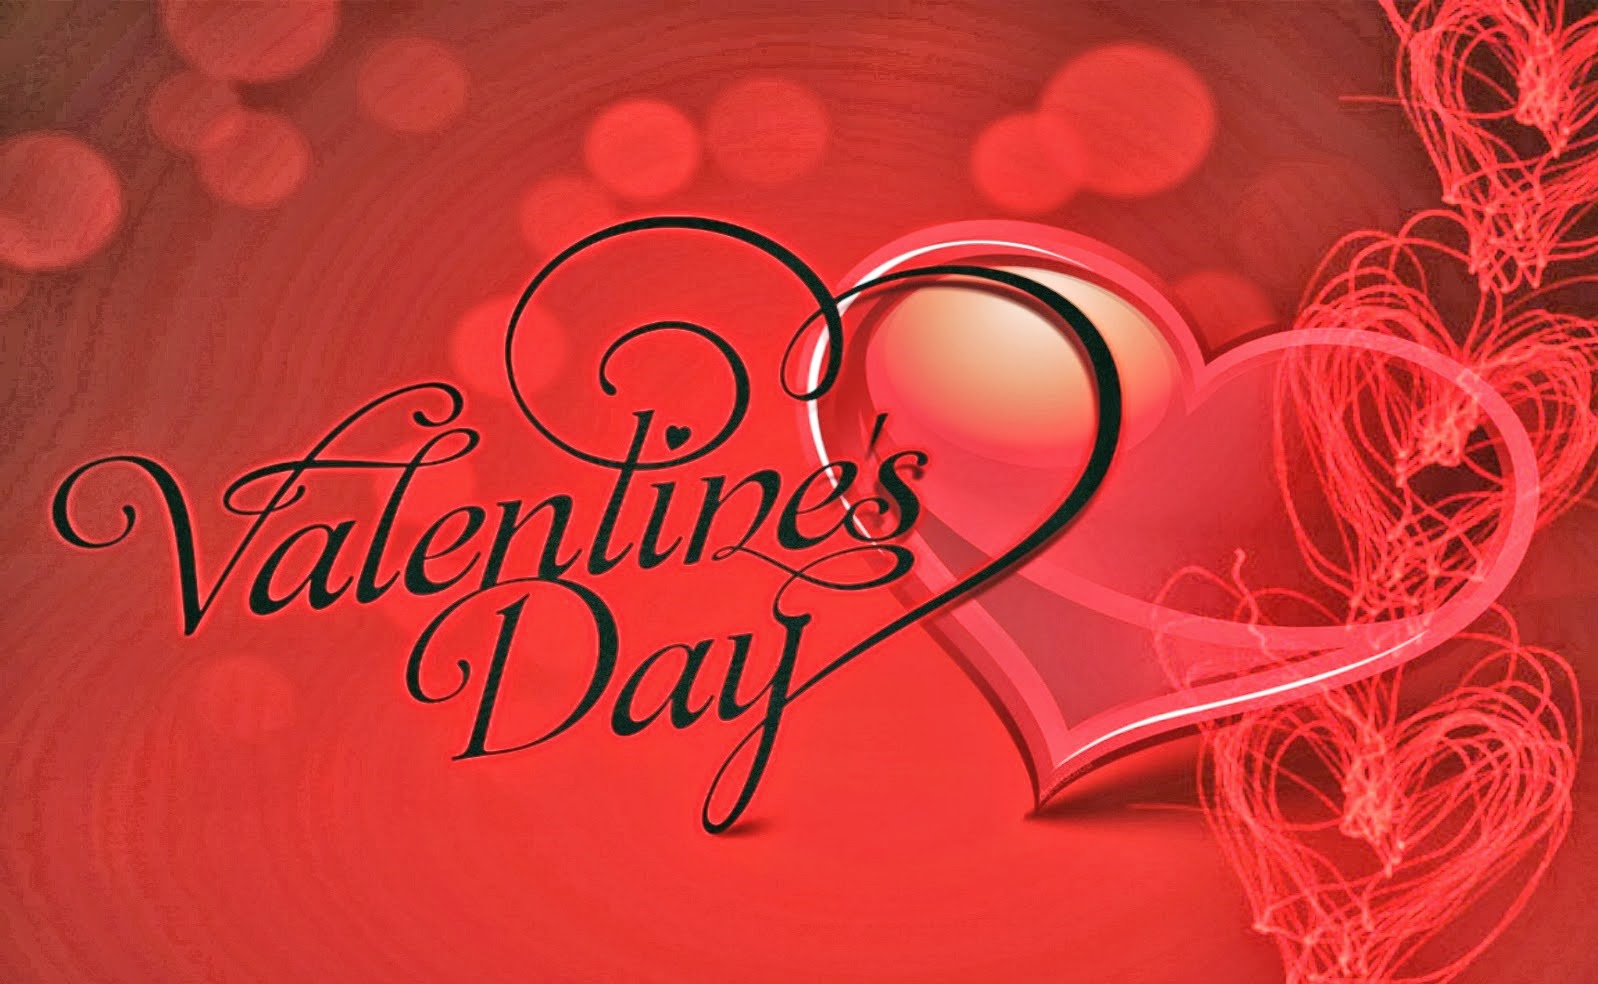 Valentines Day Quotes, Valentines Day Cards, Gifts, Ideas, Poems 2016